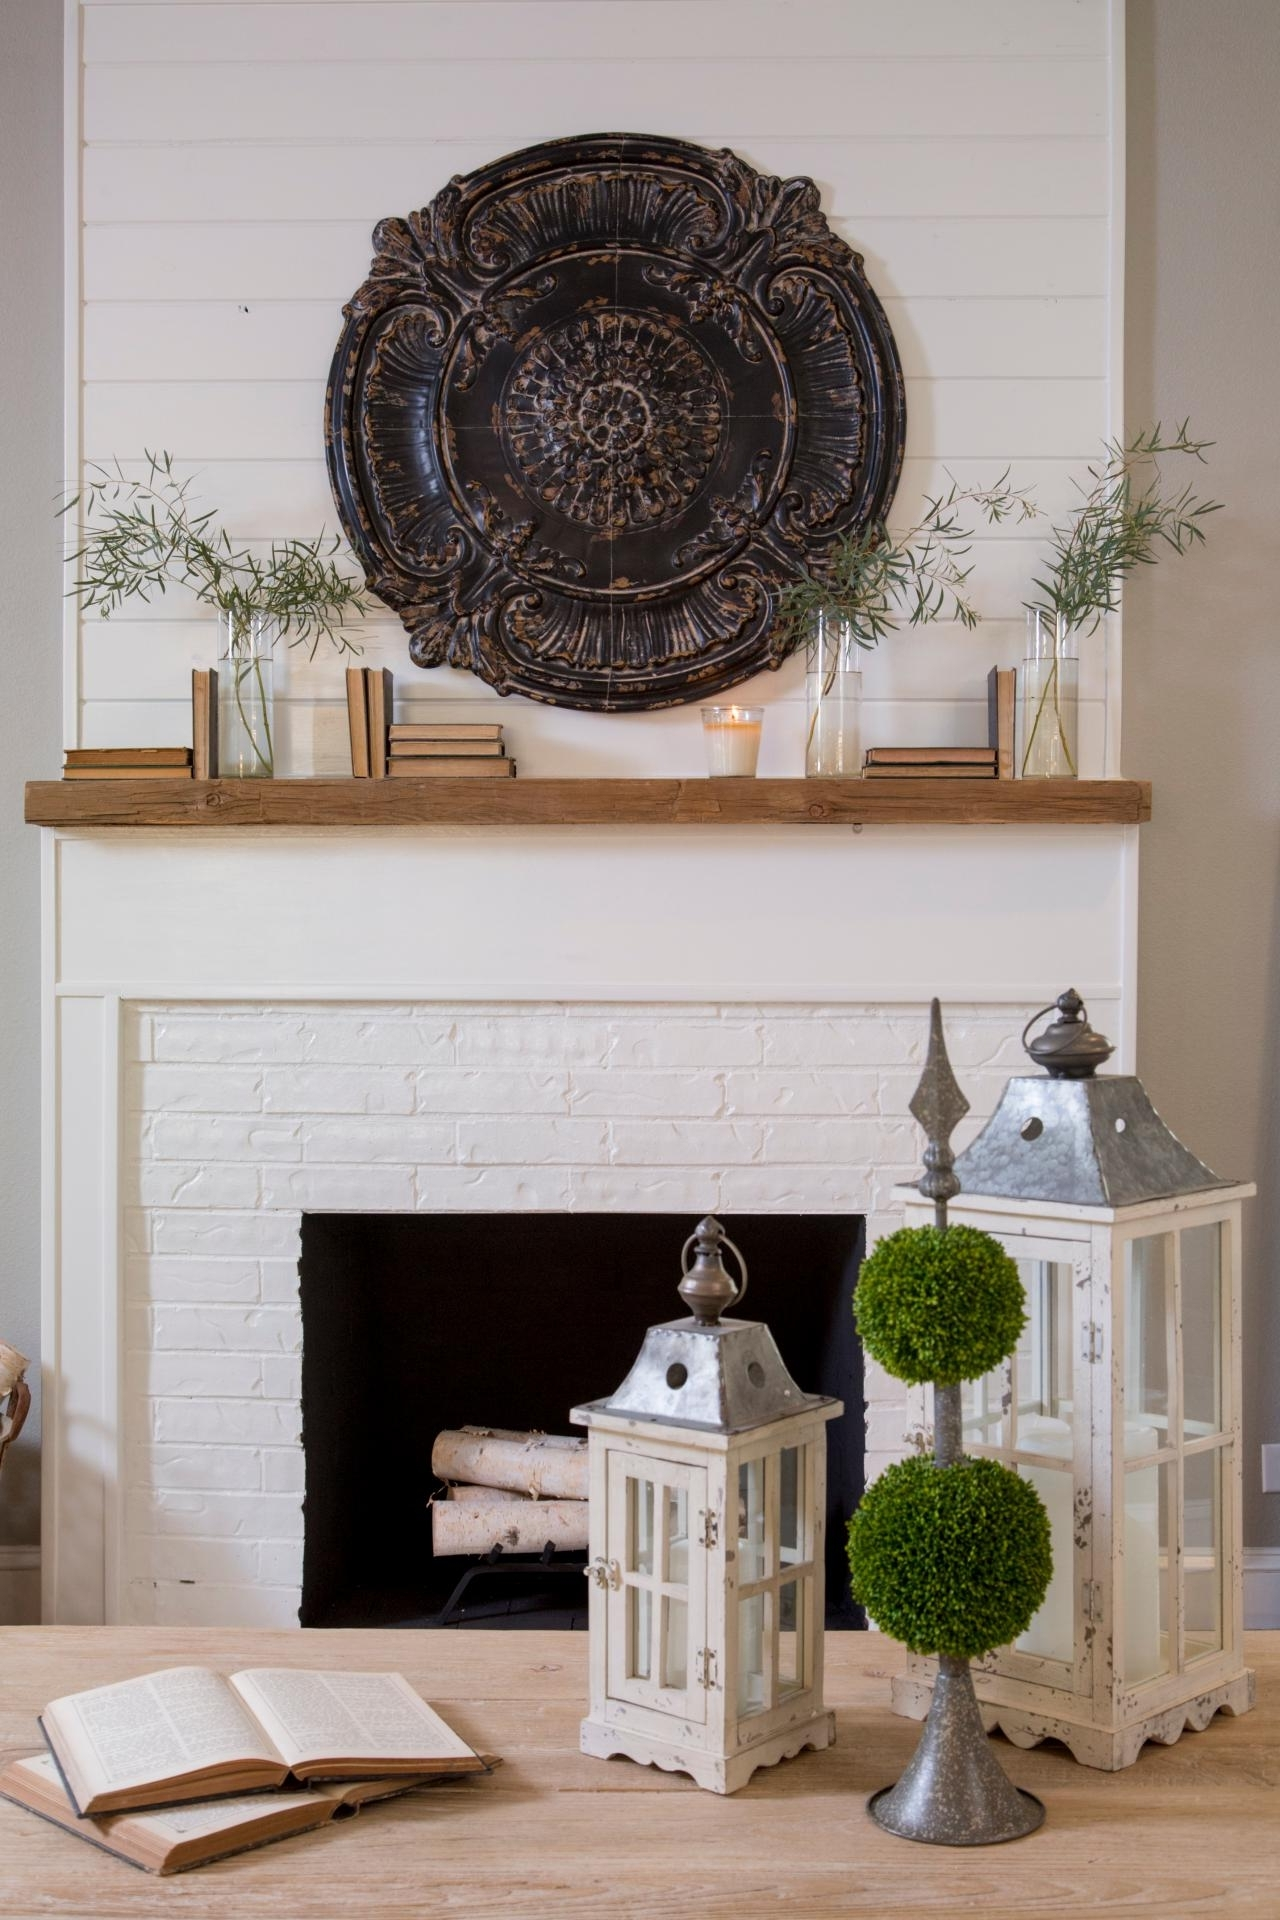 Wall Accents For Fireplace With Latest 18 Genius Wall Decor Ideas (View 14 of 15)